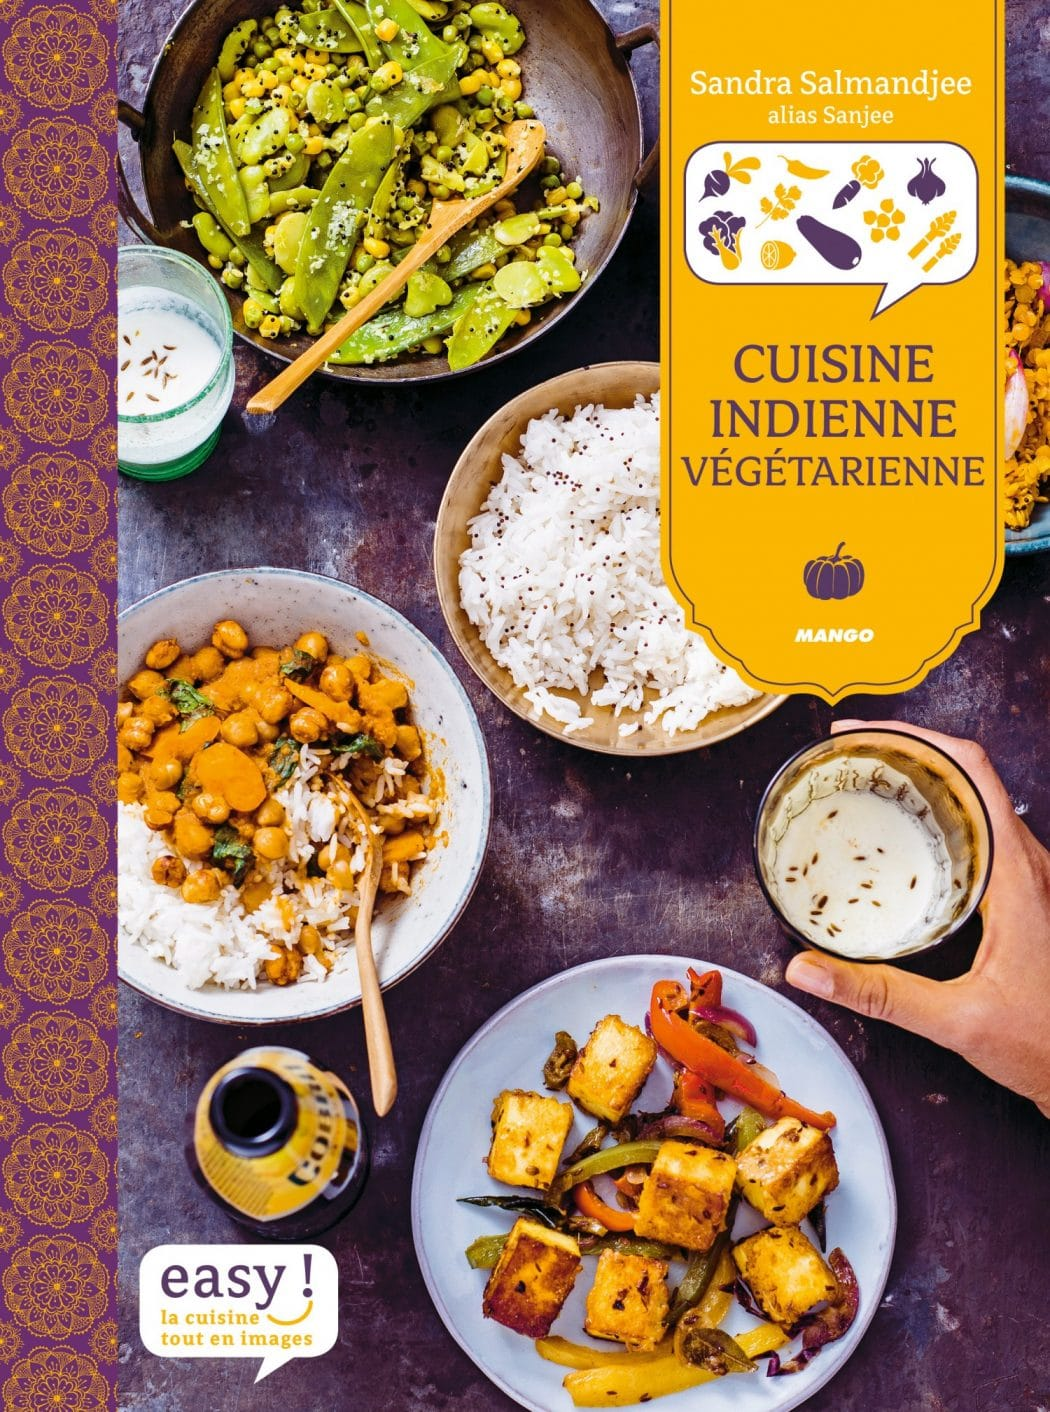 CUISINE INDIENNE VEGETARIENNE ★ NEW FEV18